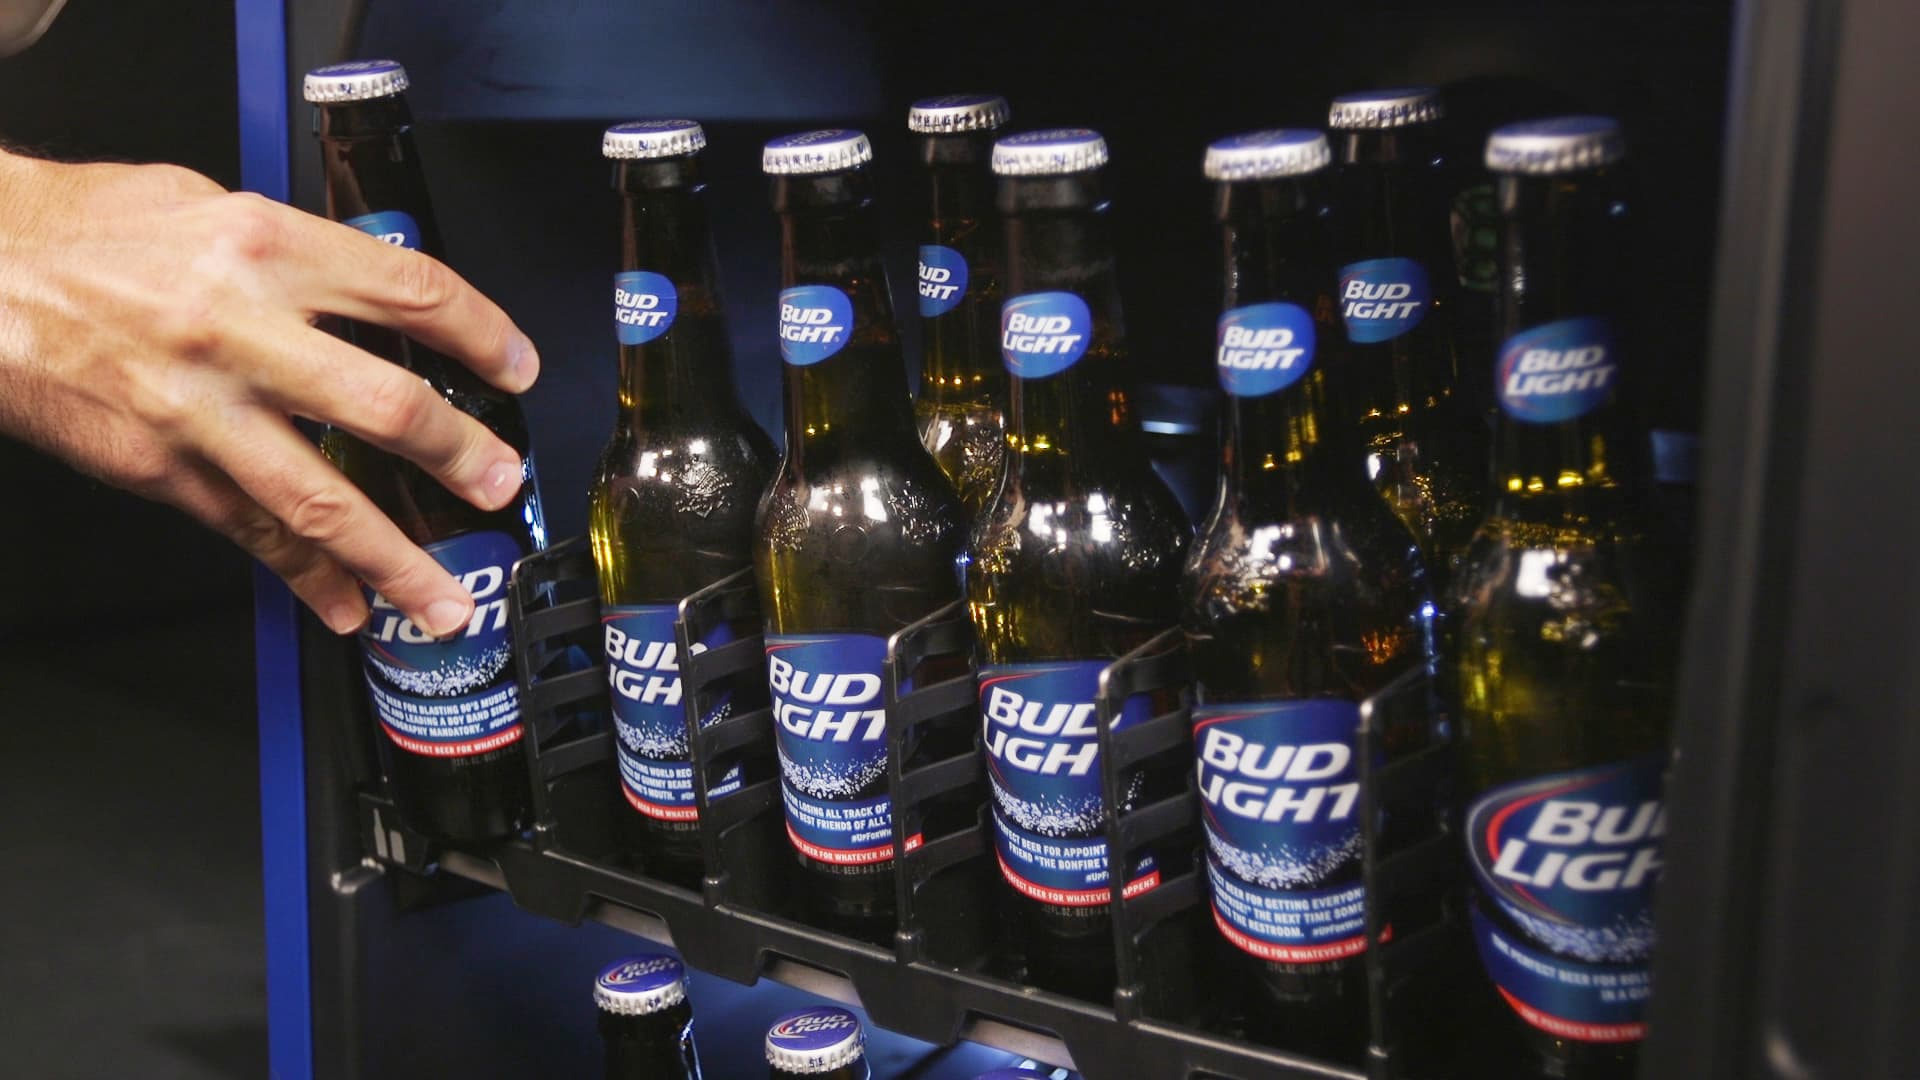 Out of beer? Bud Light's smart fridge will tell you